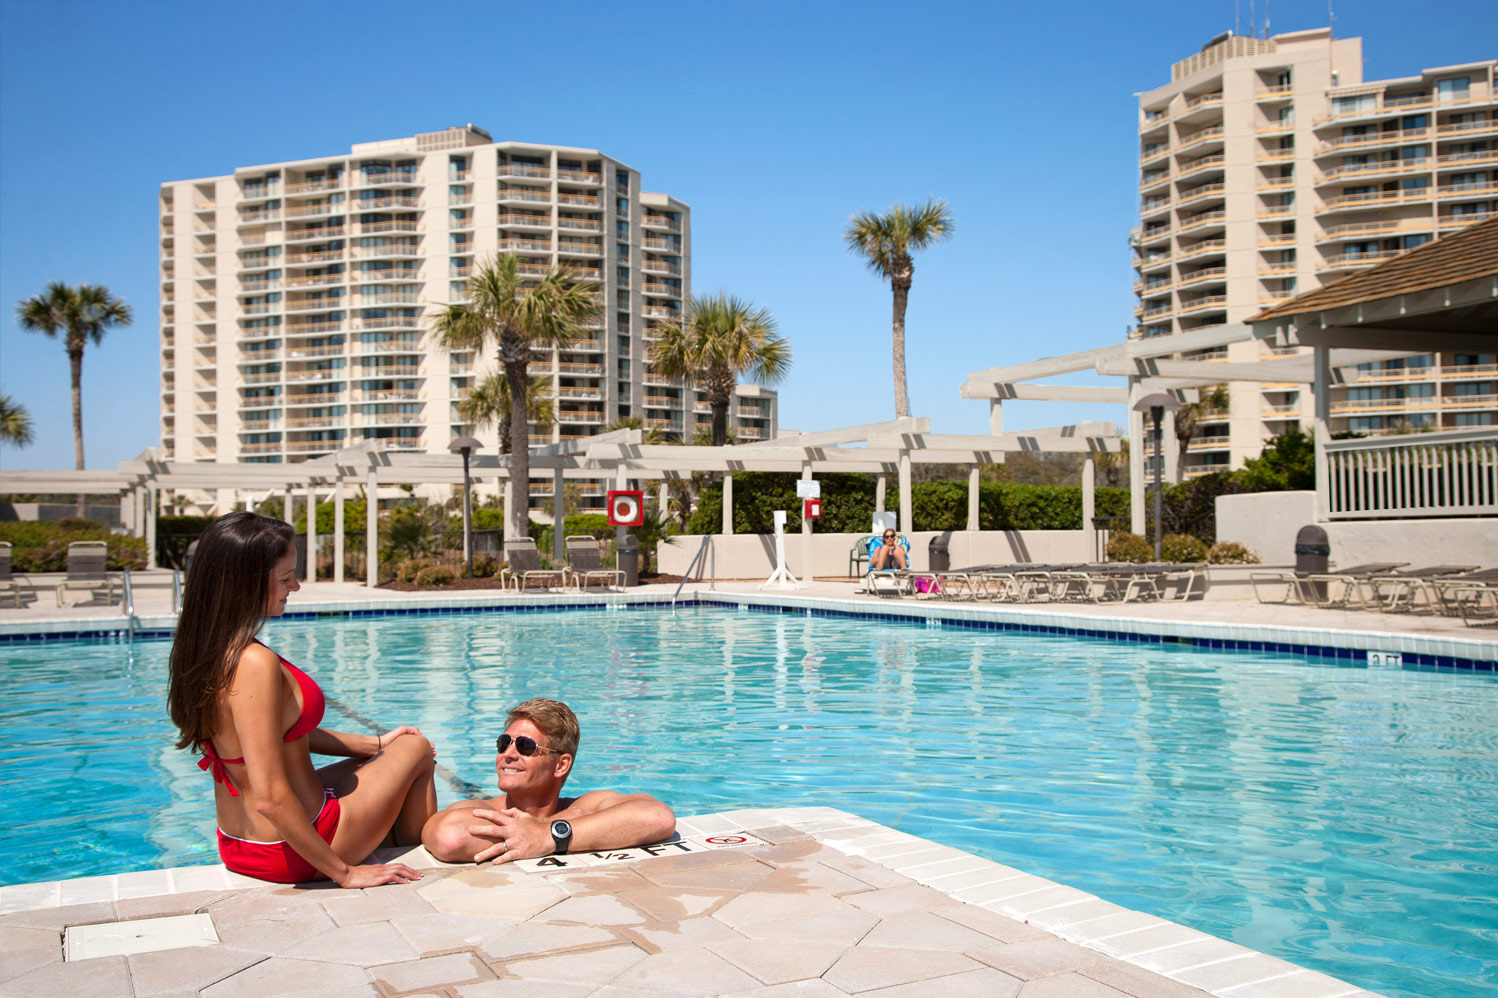 The Beach Club Pool is a relaxing place to spend the day!